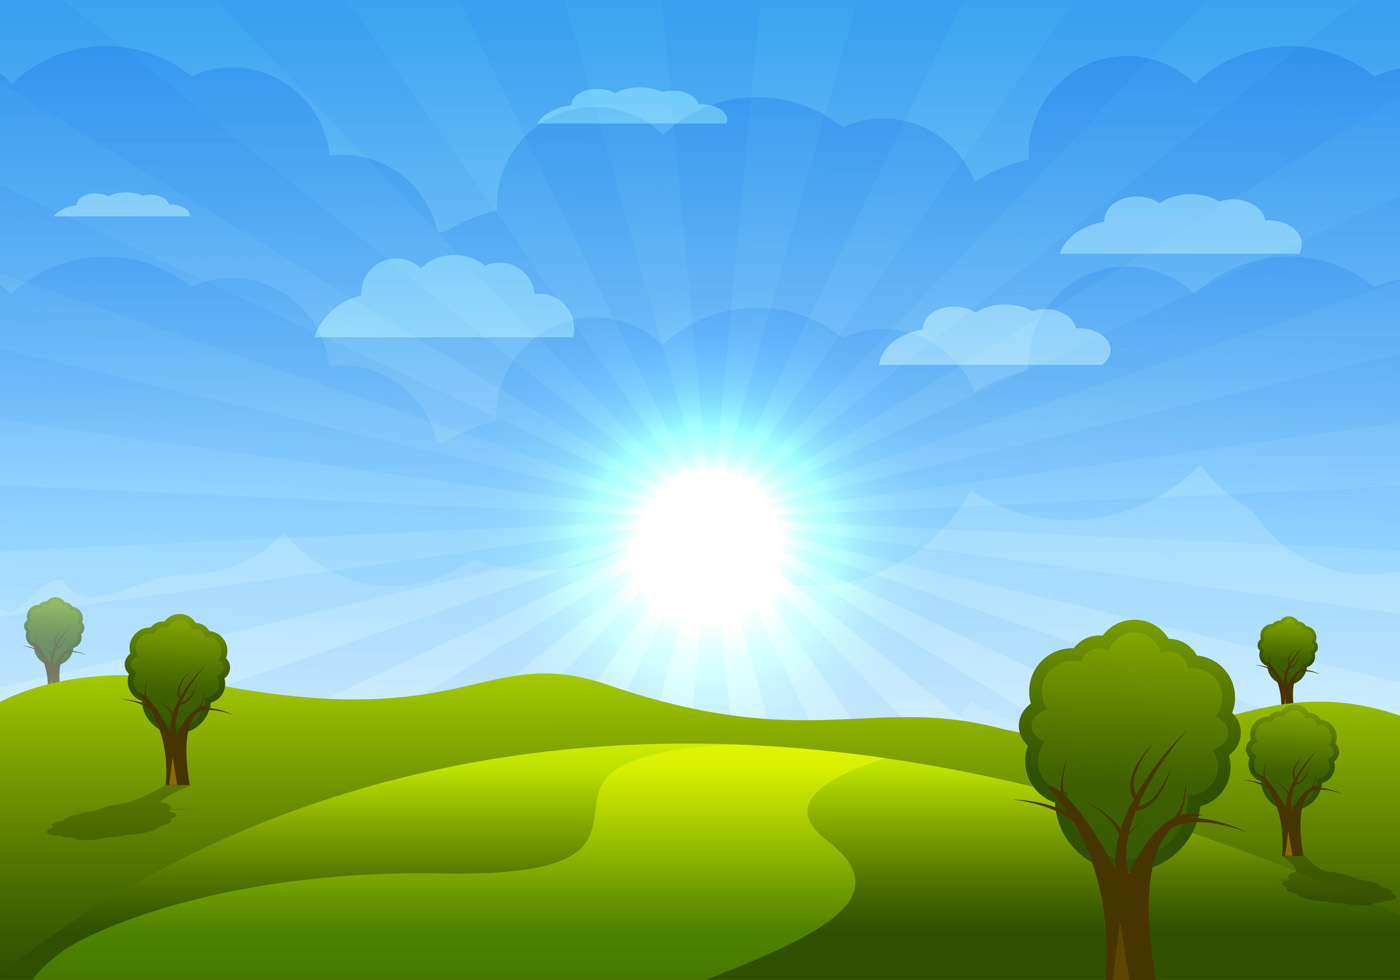 ... Landscape Vector - Download Free Vector Art, Stock Graphics & Images